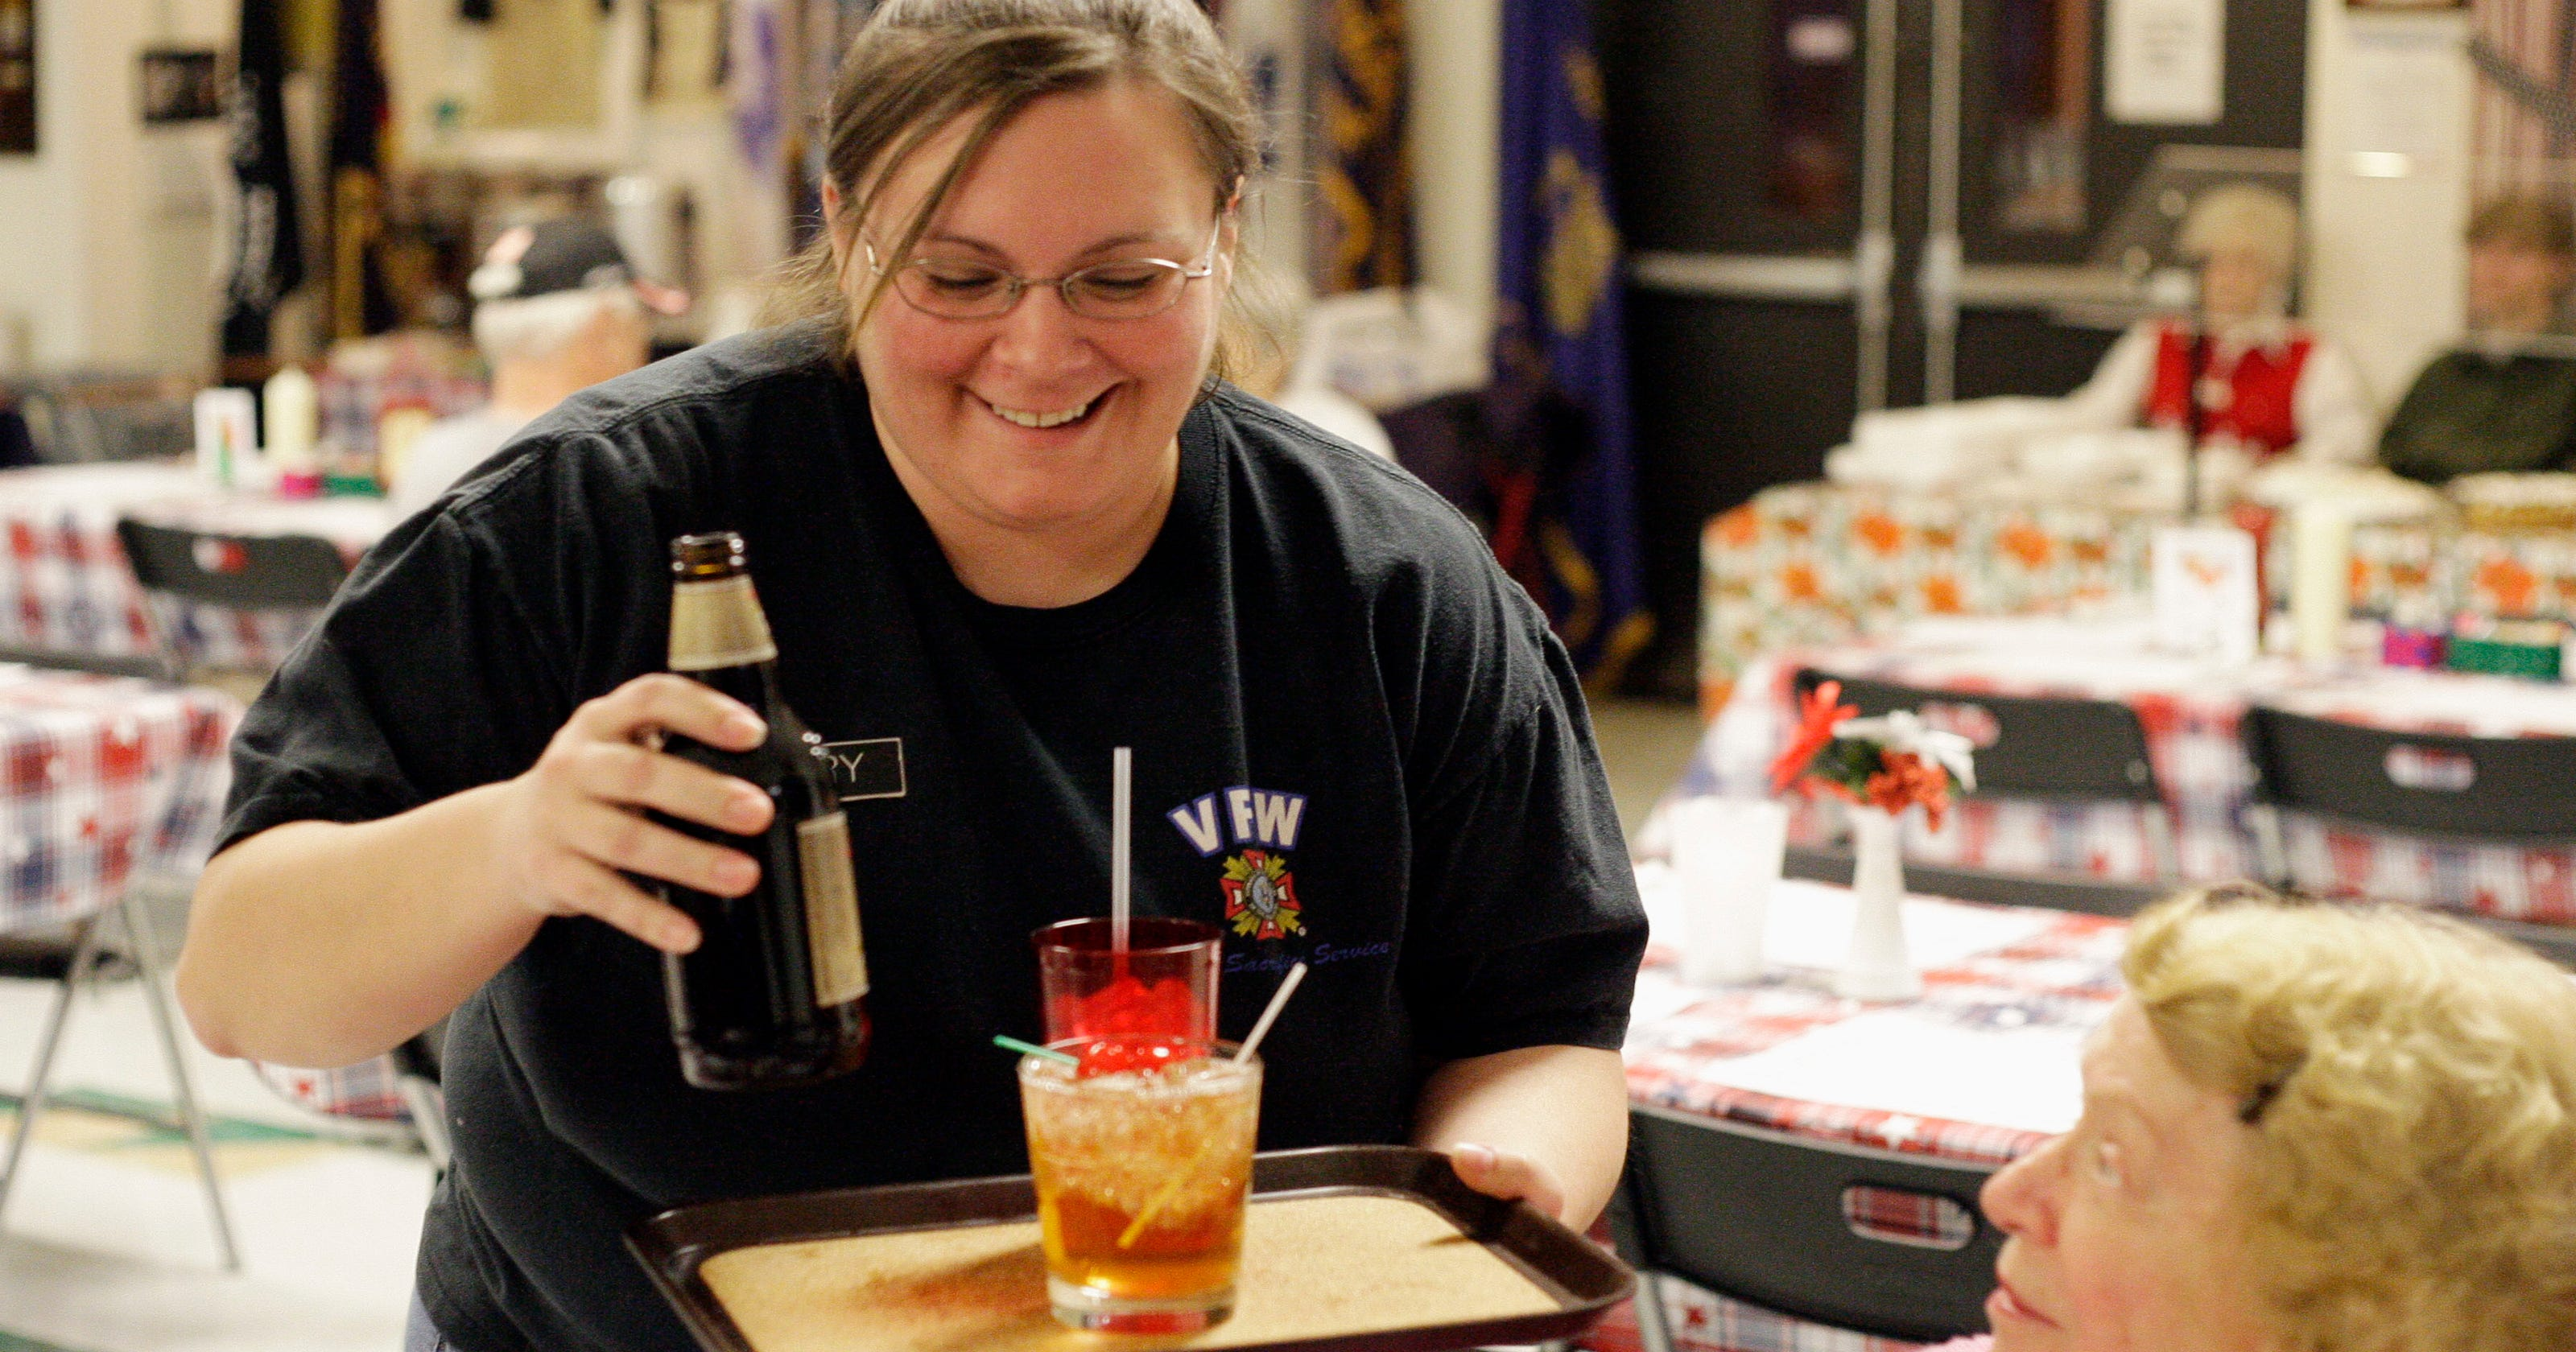 Vfw waitress made a life serving those who served for Vfw fish fry